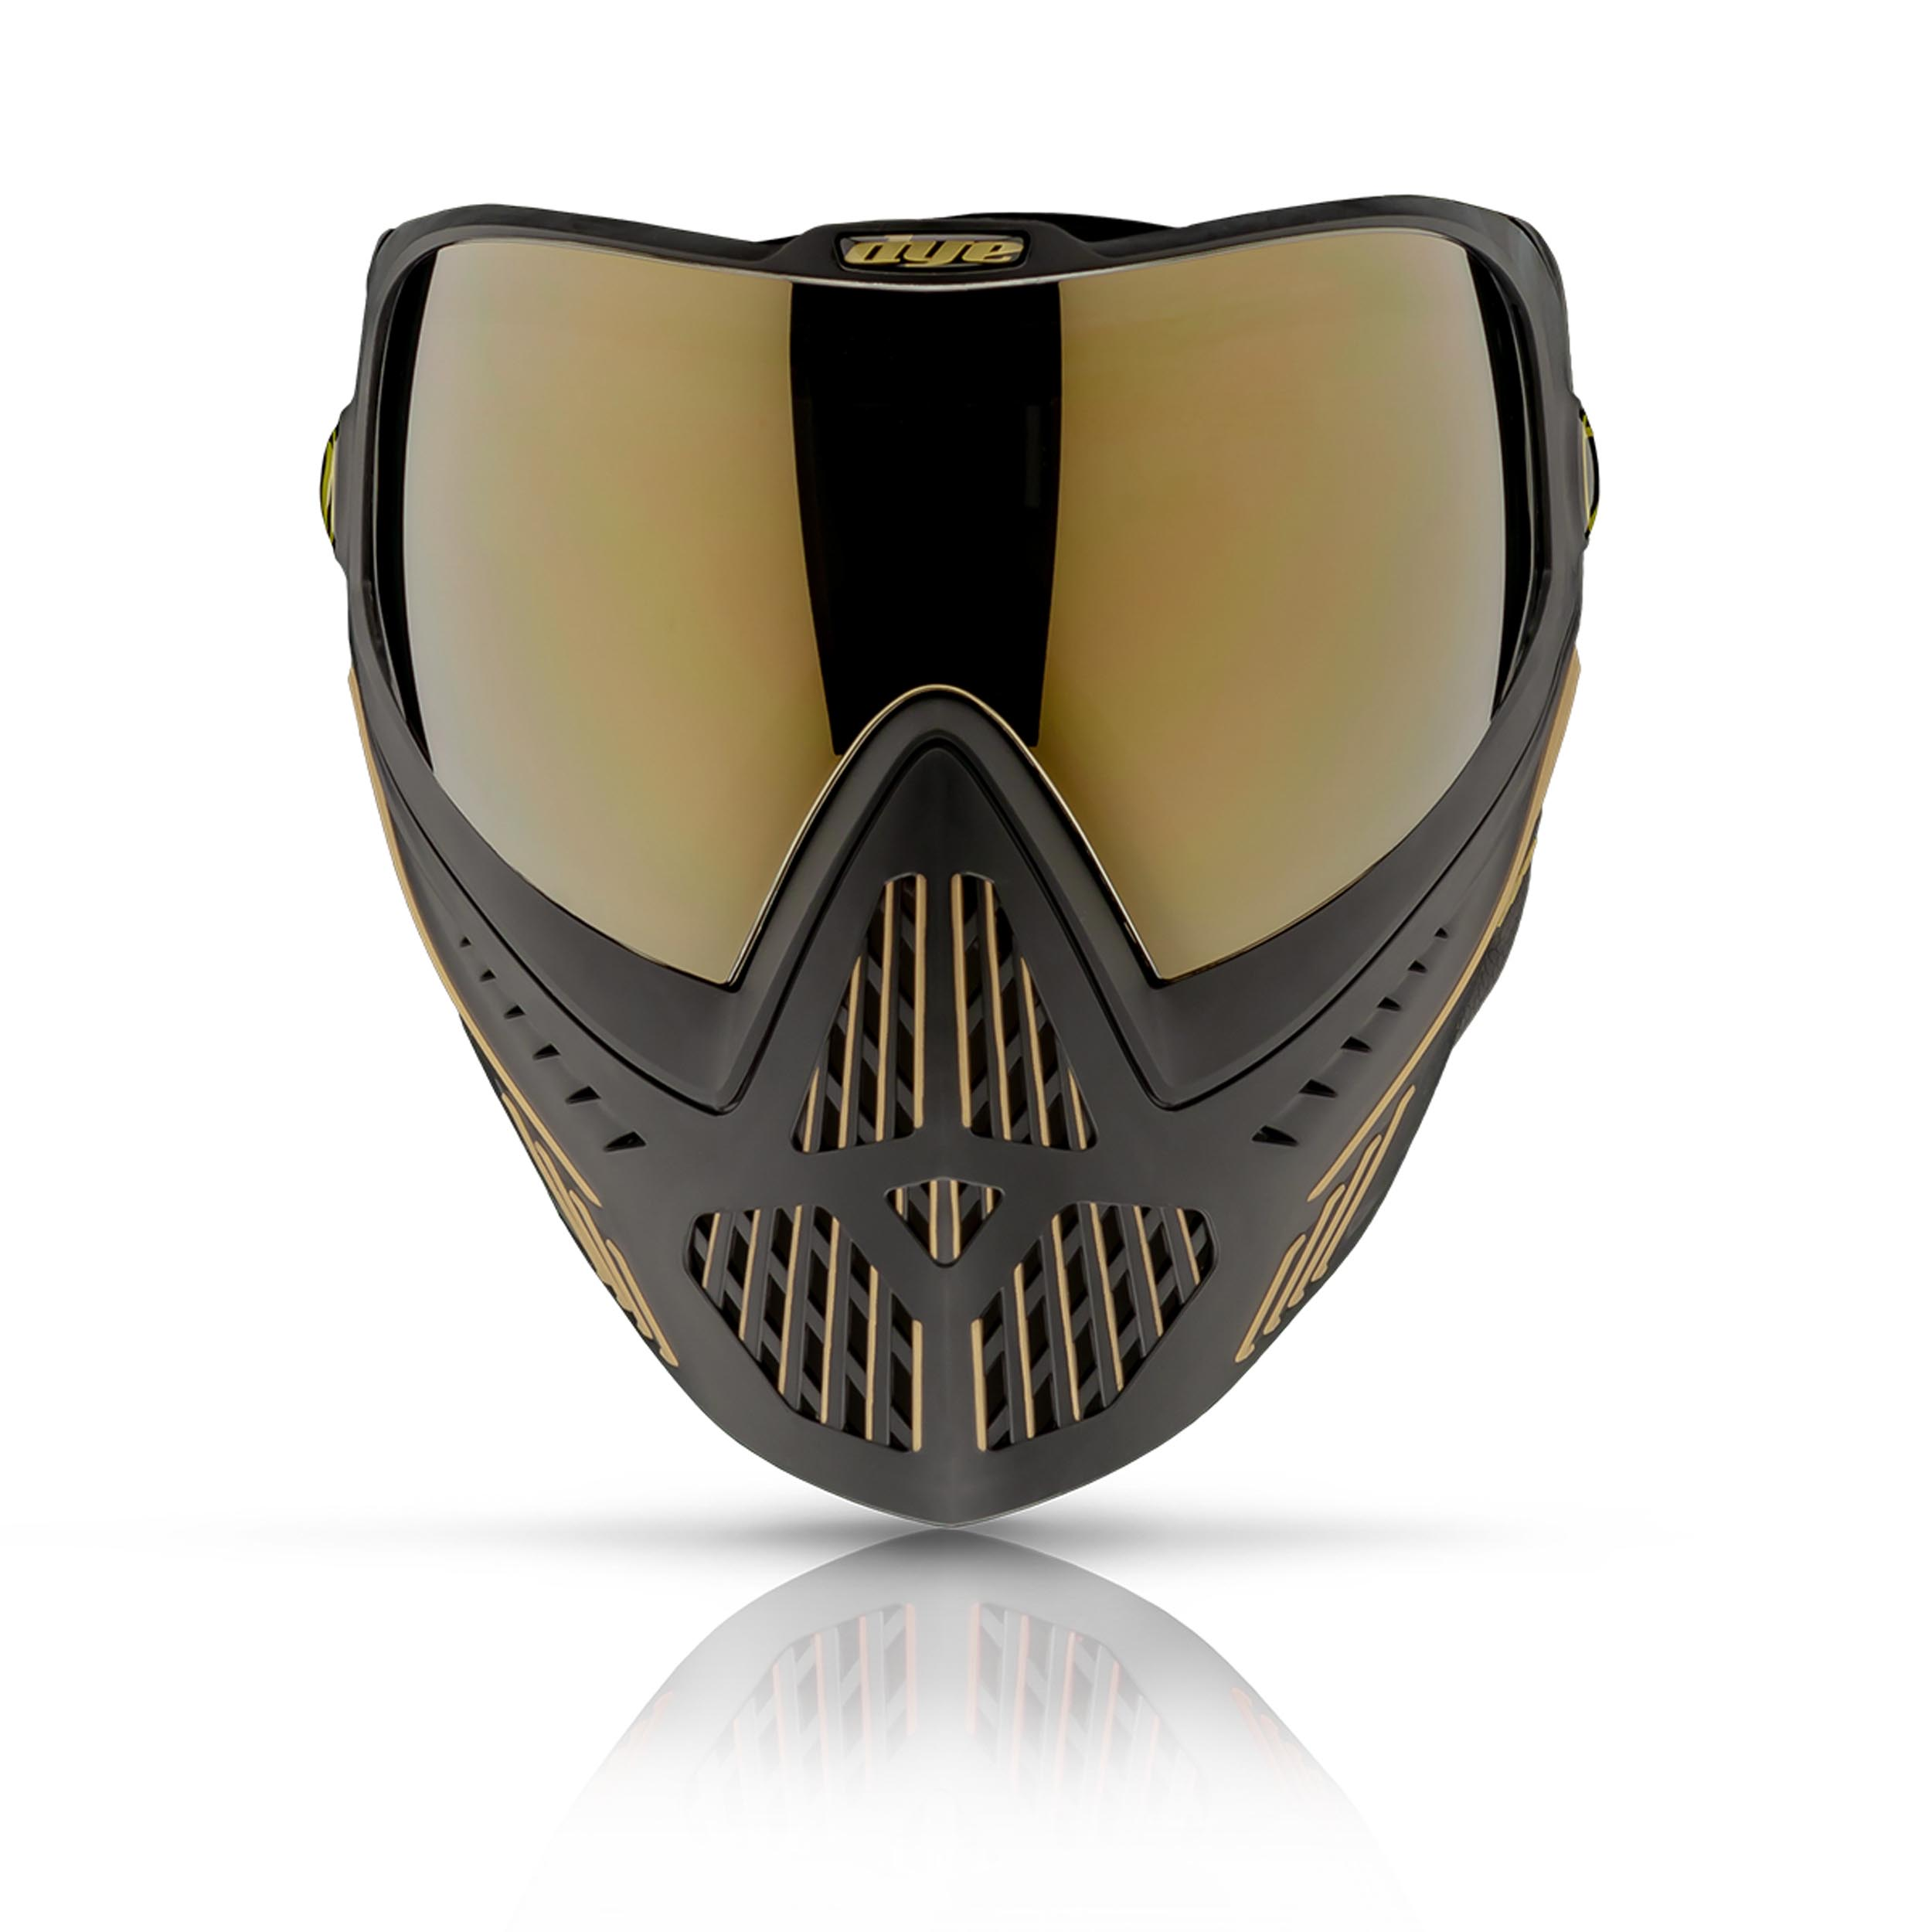 MAS470-2 Dye I5 thermal goggle Onyx Black Gold 2.0 - MAS473